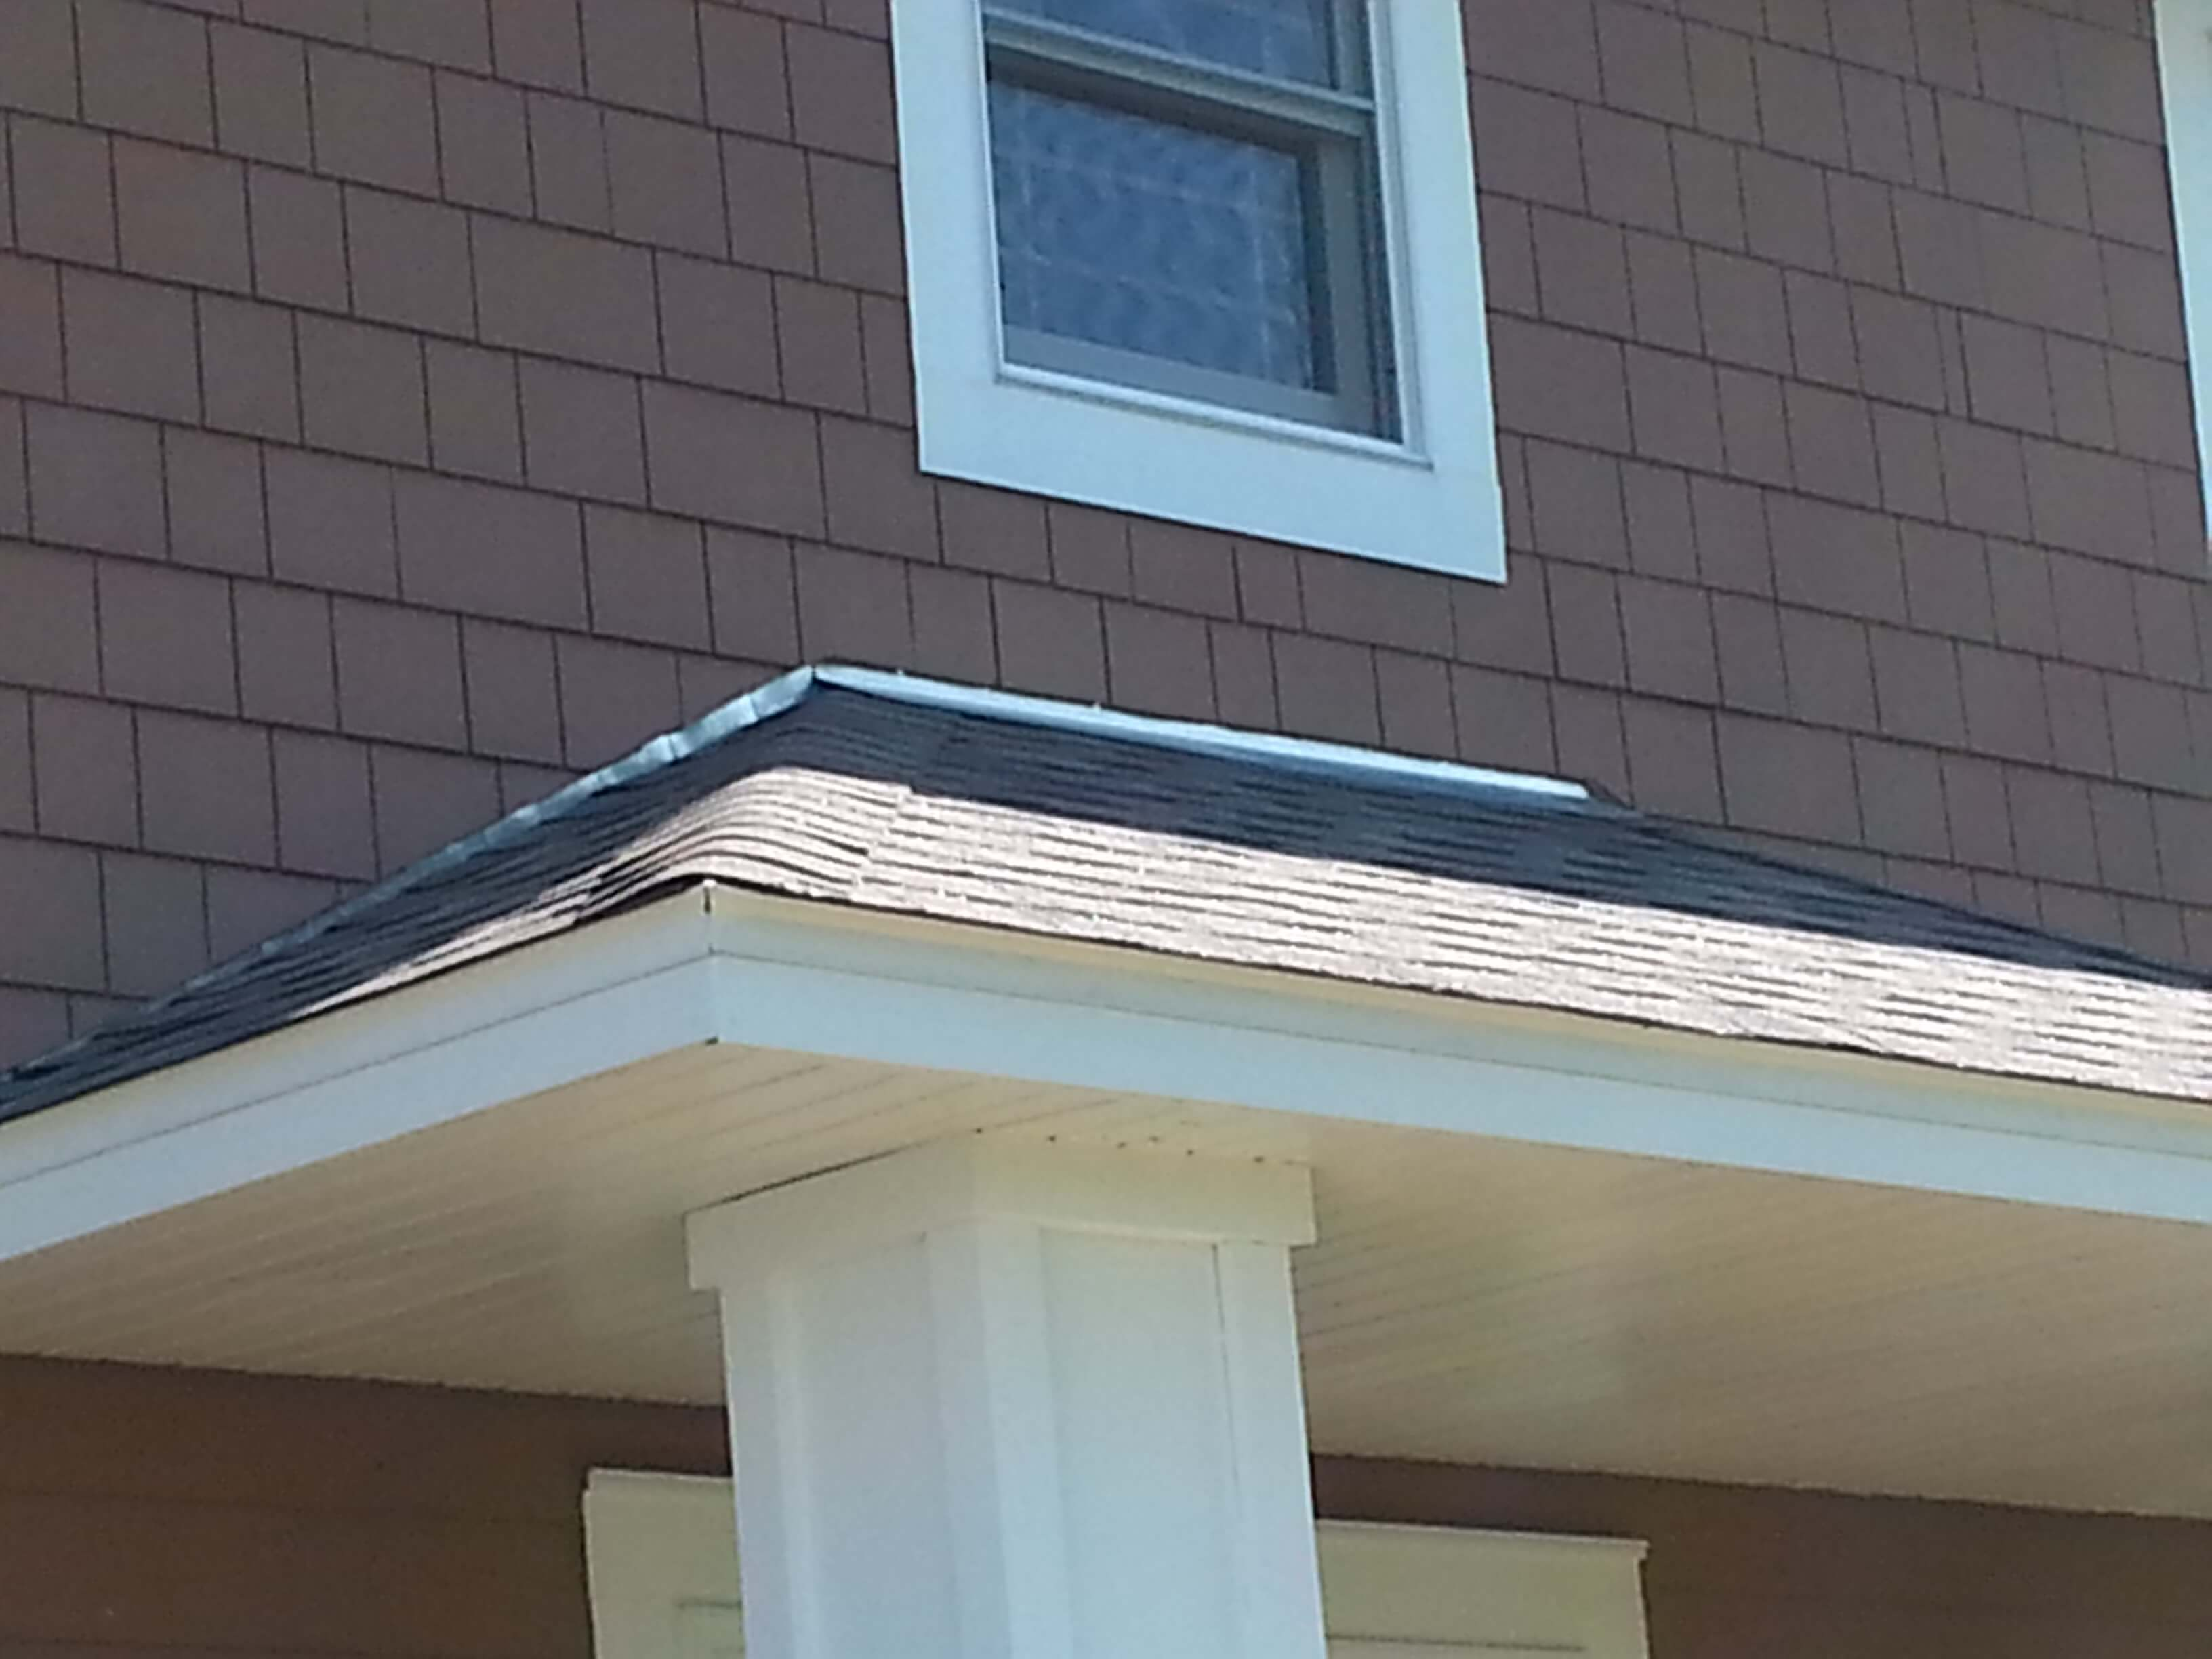 Aluminum Flashing From Roof Line To Har Shake